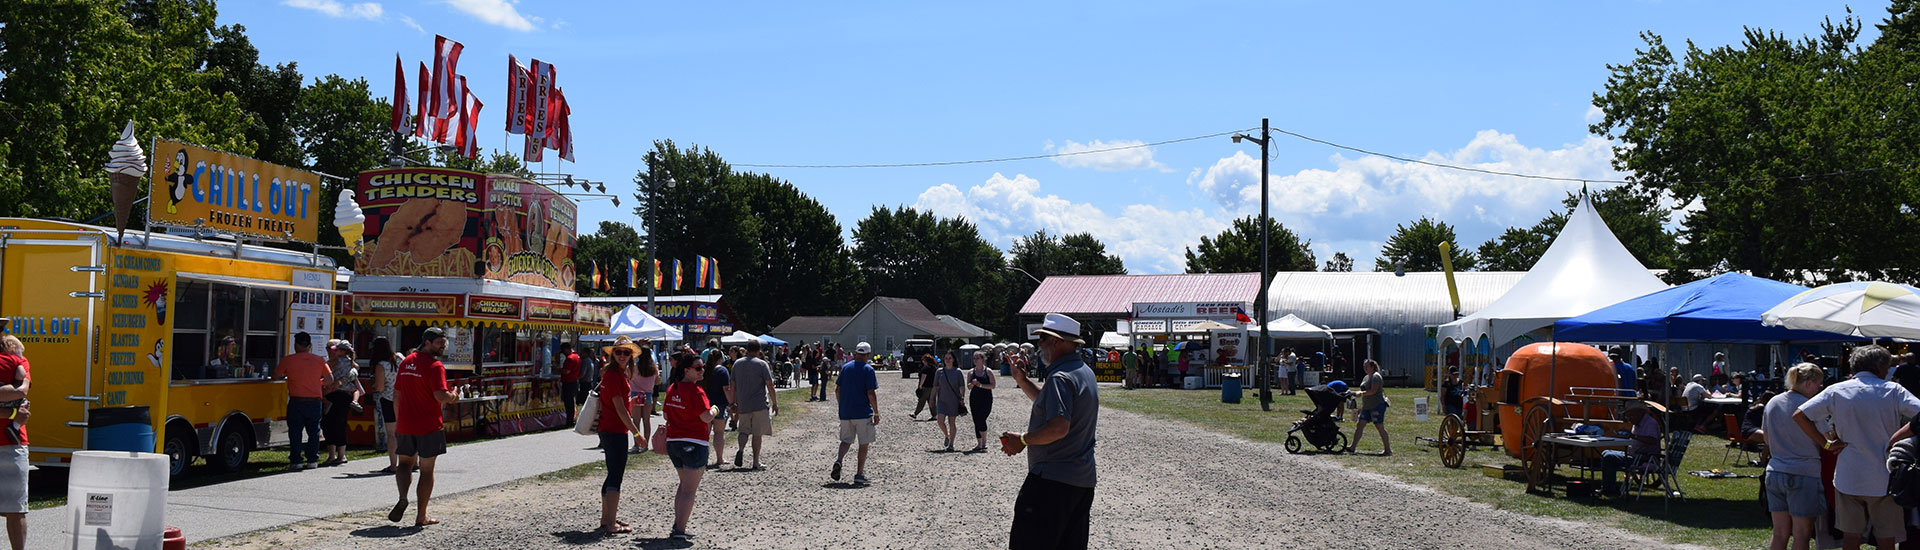 The 161st Comber Fair | August 7th, 8th & 9th 2020